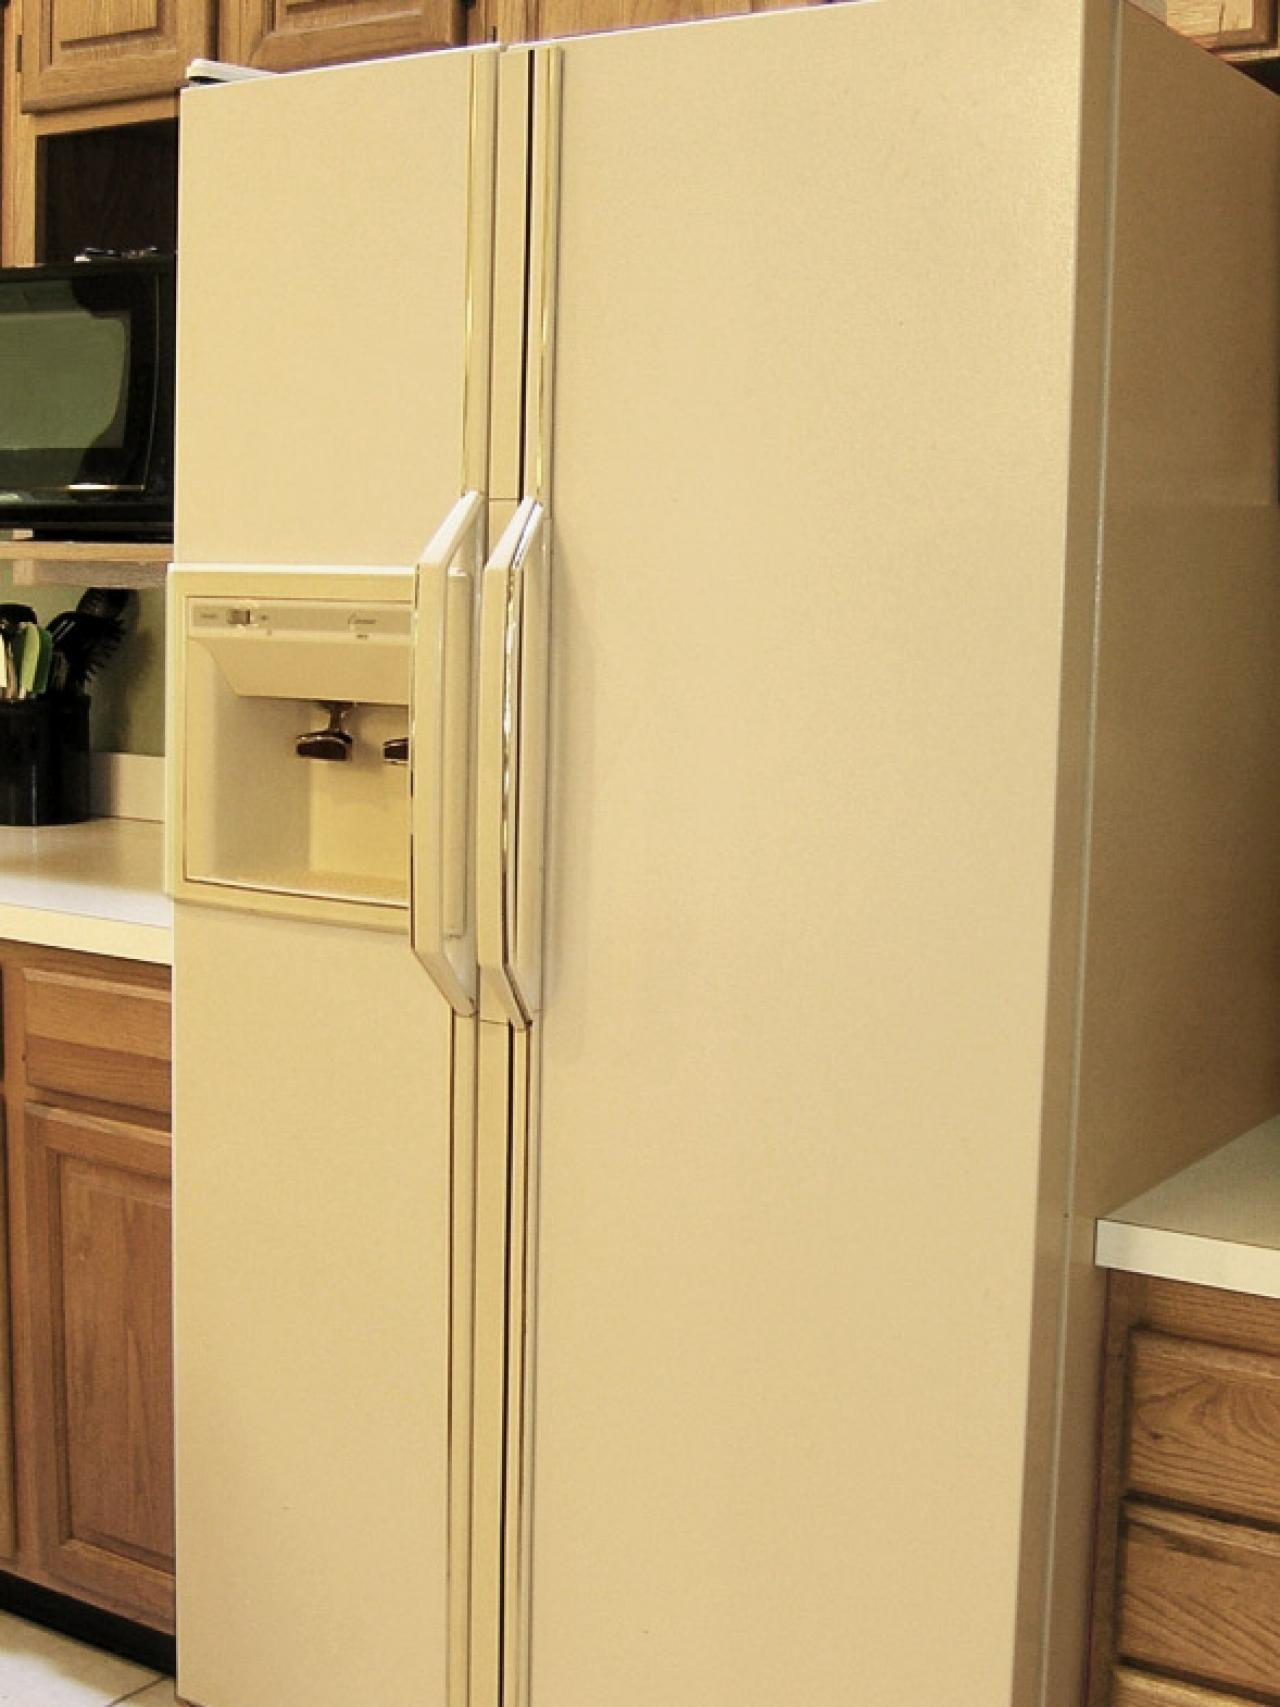 Your Kitchen Stainless Steel Paint Diy